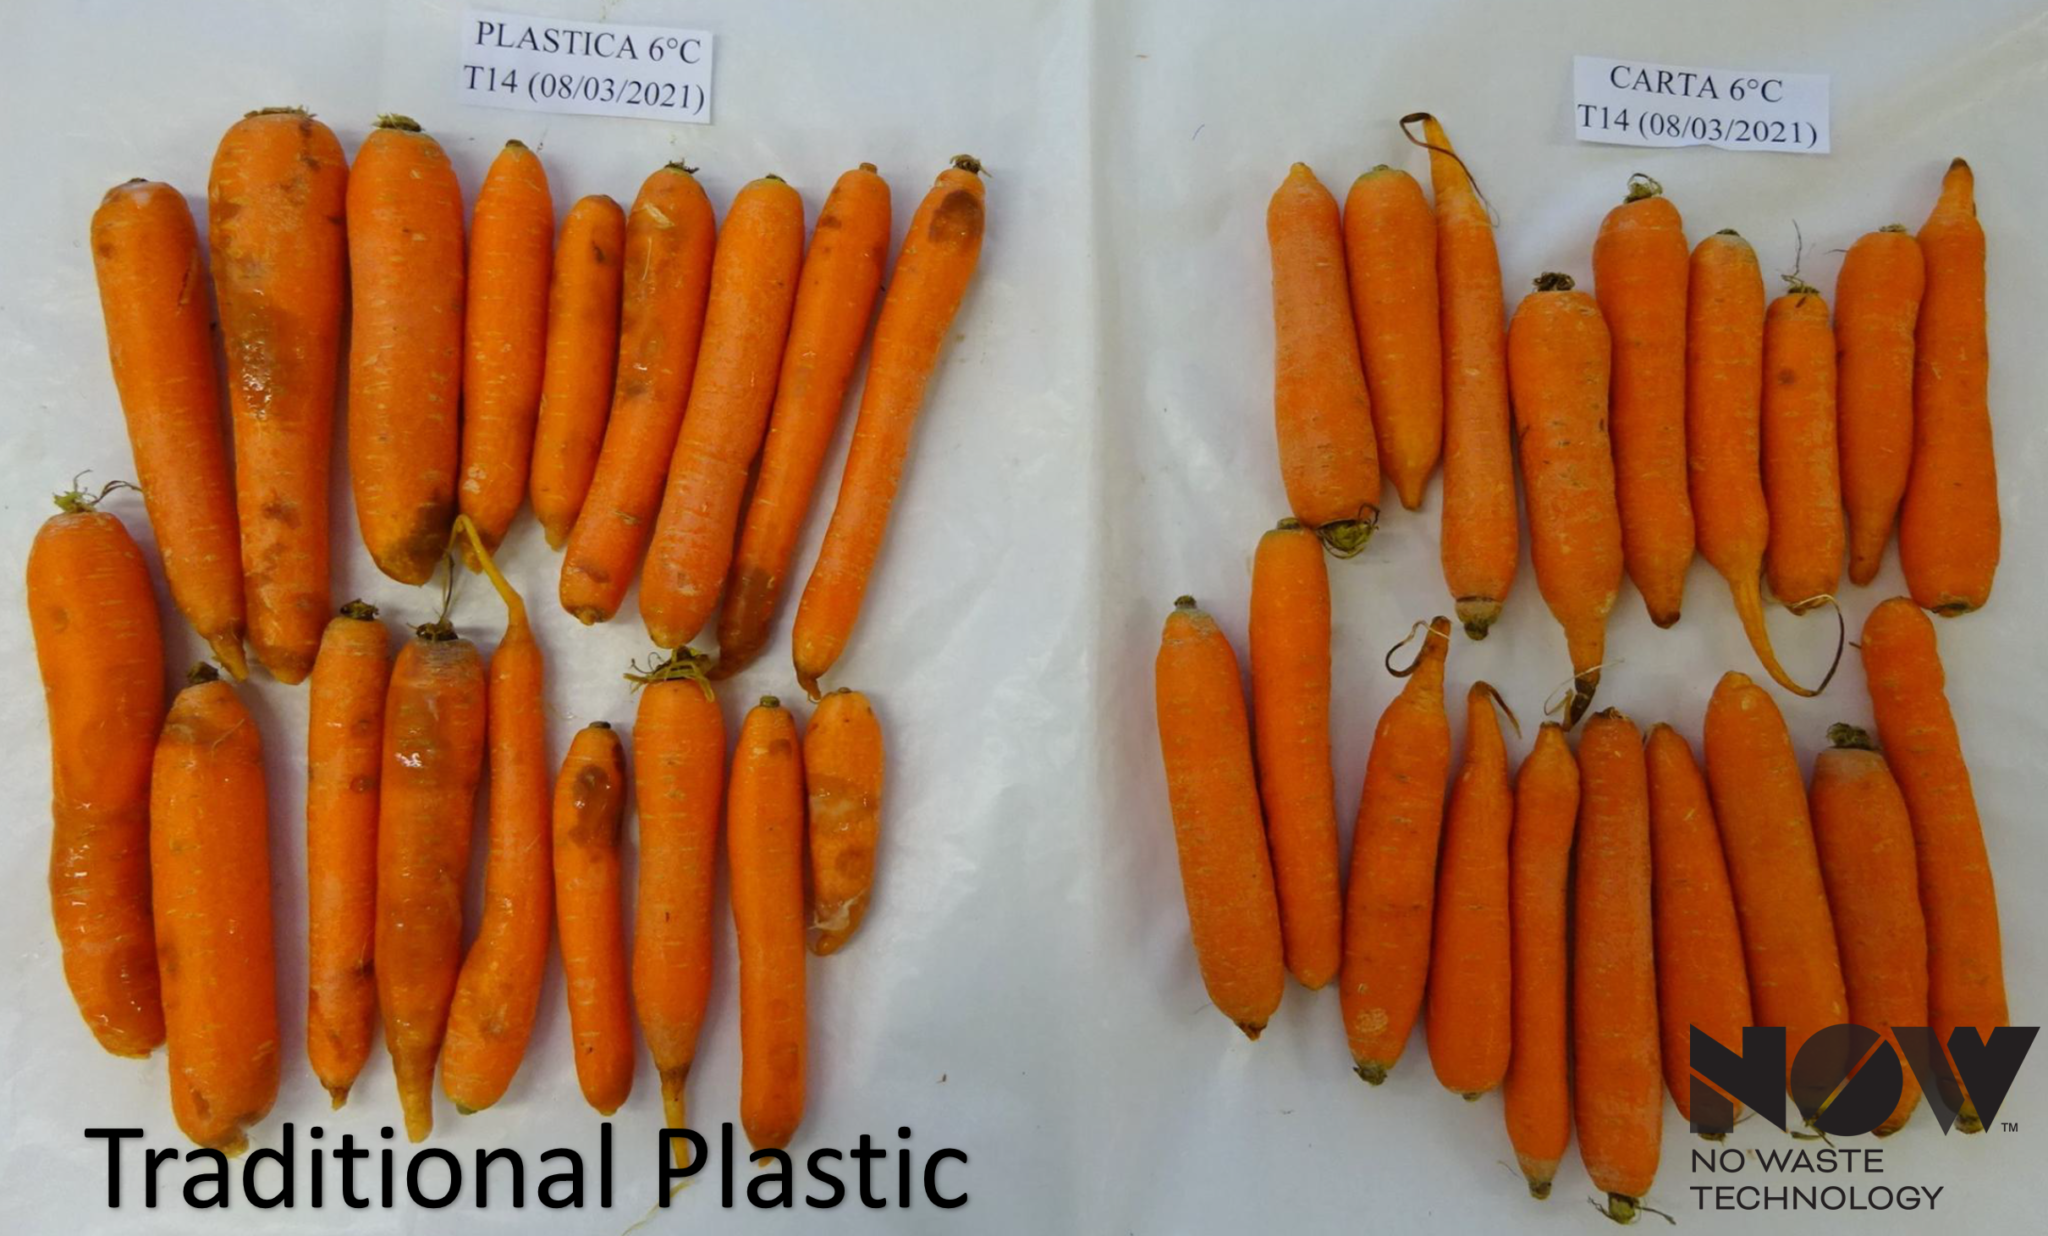 Carrots in Plastic v. NOW Plastic Free Packaging